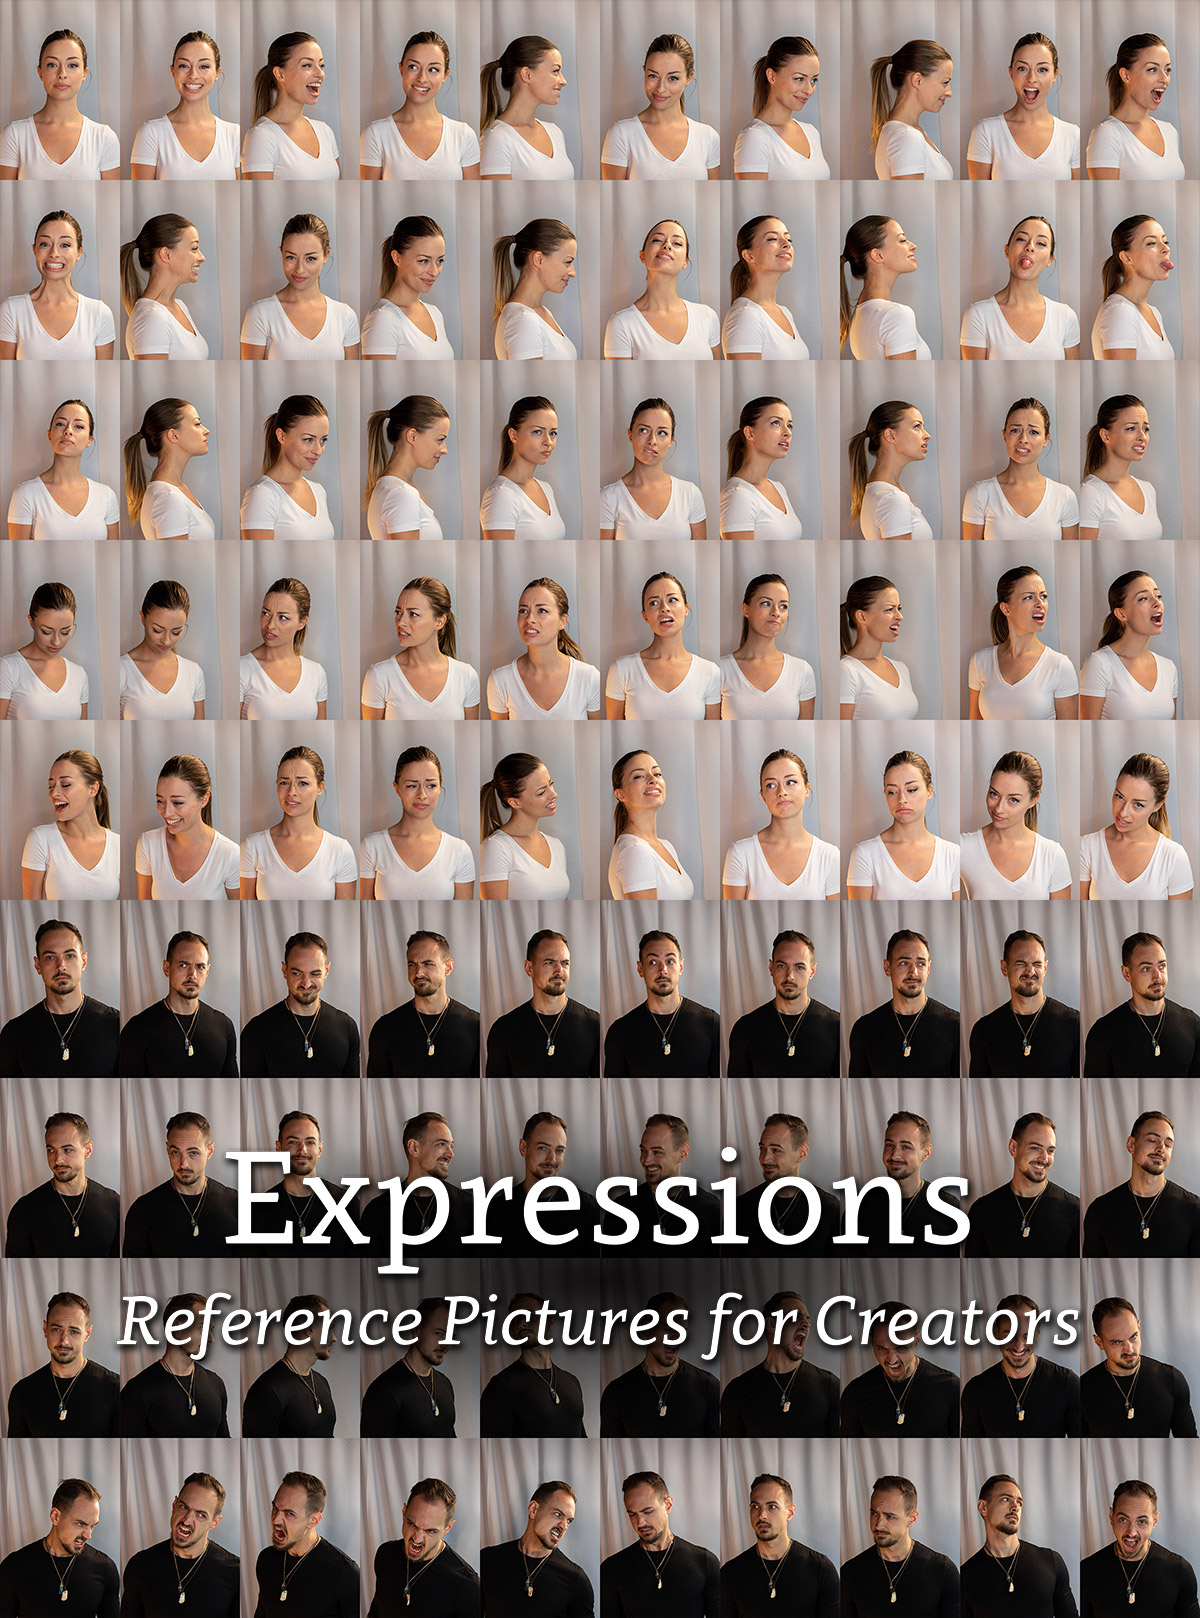 Expressions - Reference Pictures for Creators